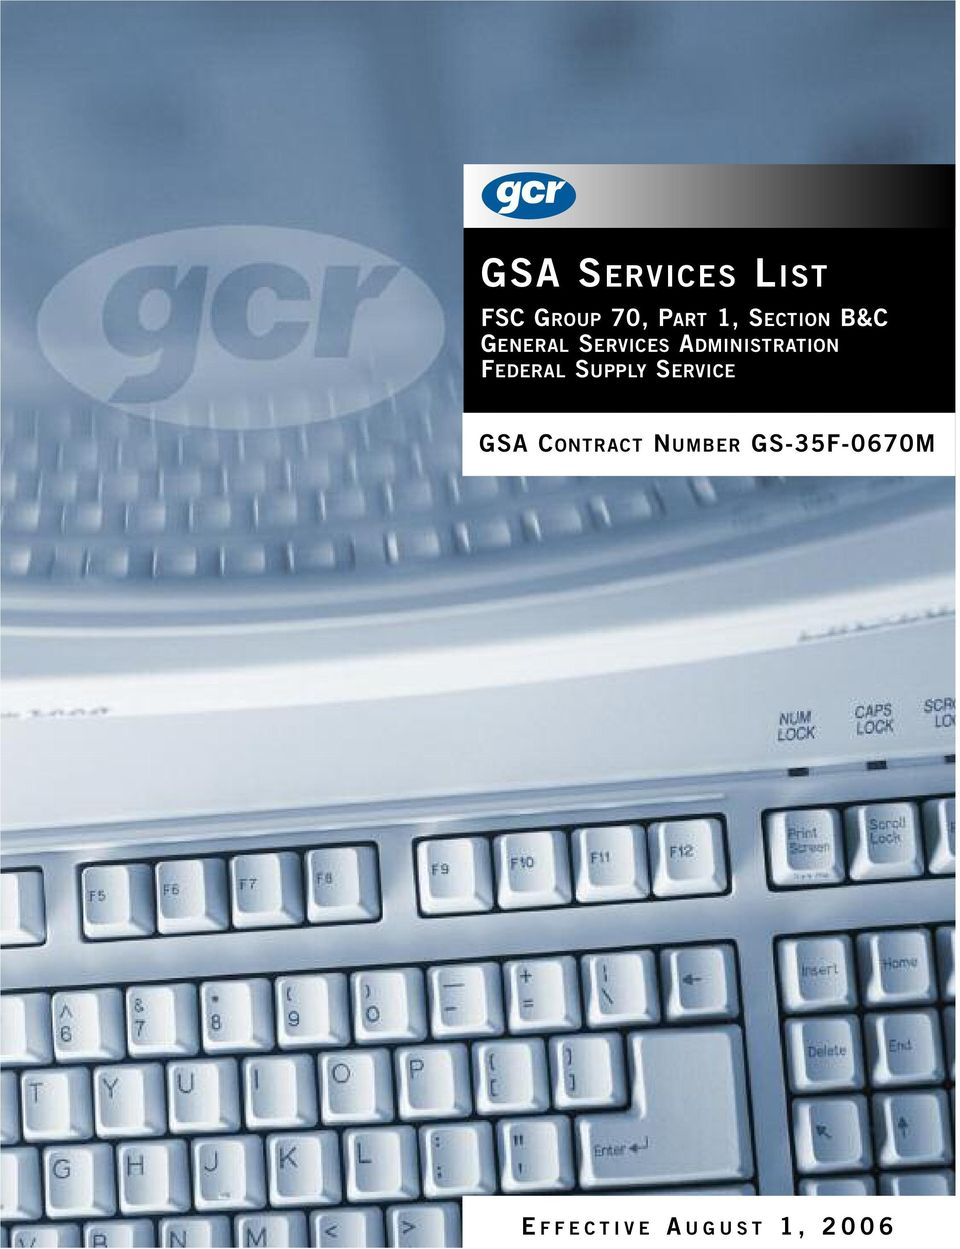 FEDERAL SUPPLY SERVICE GSA CONTRACT